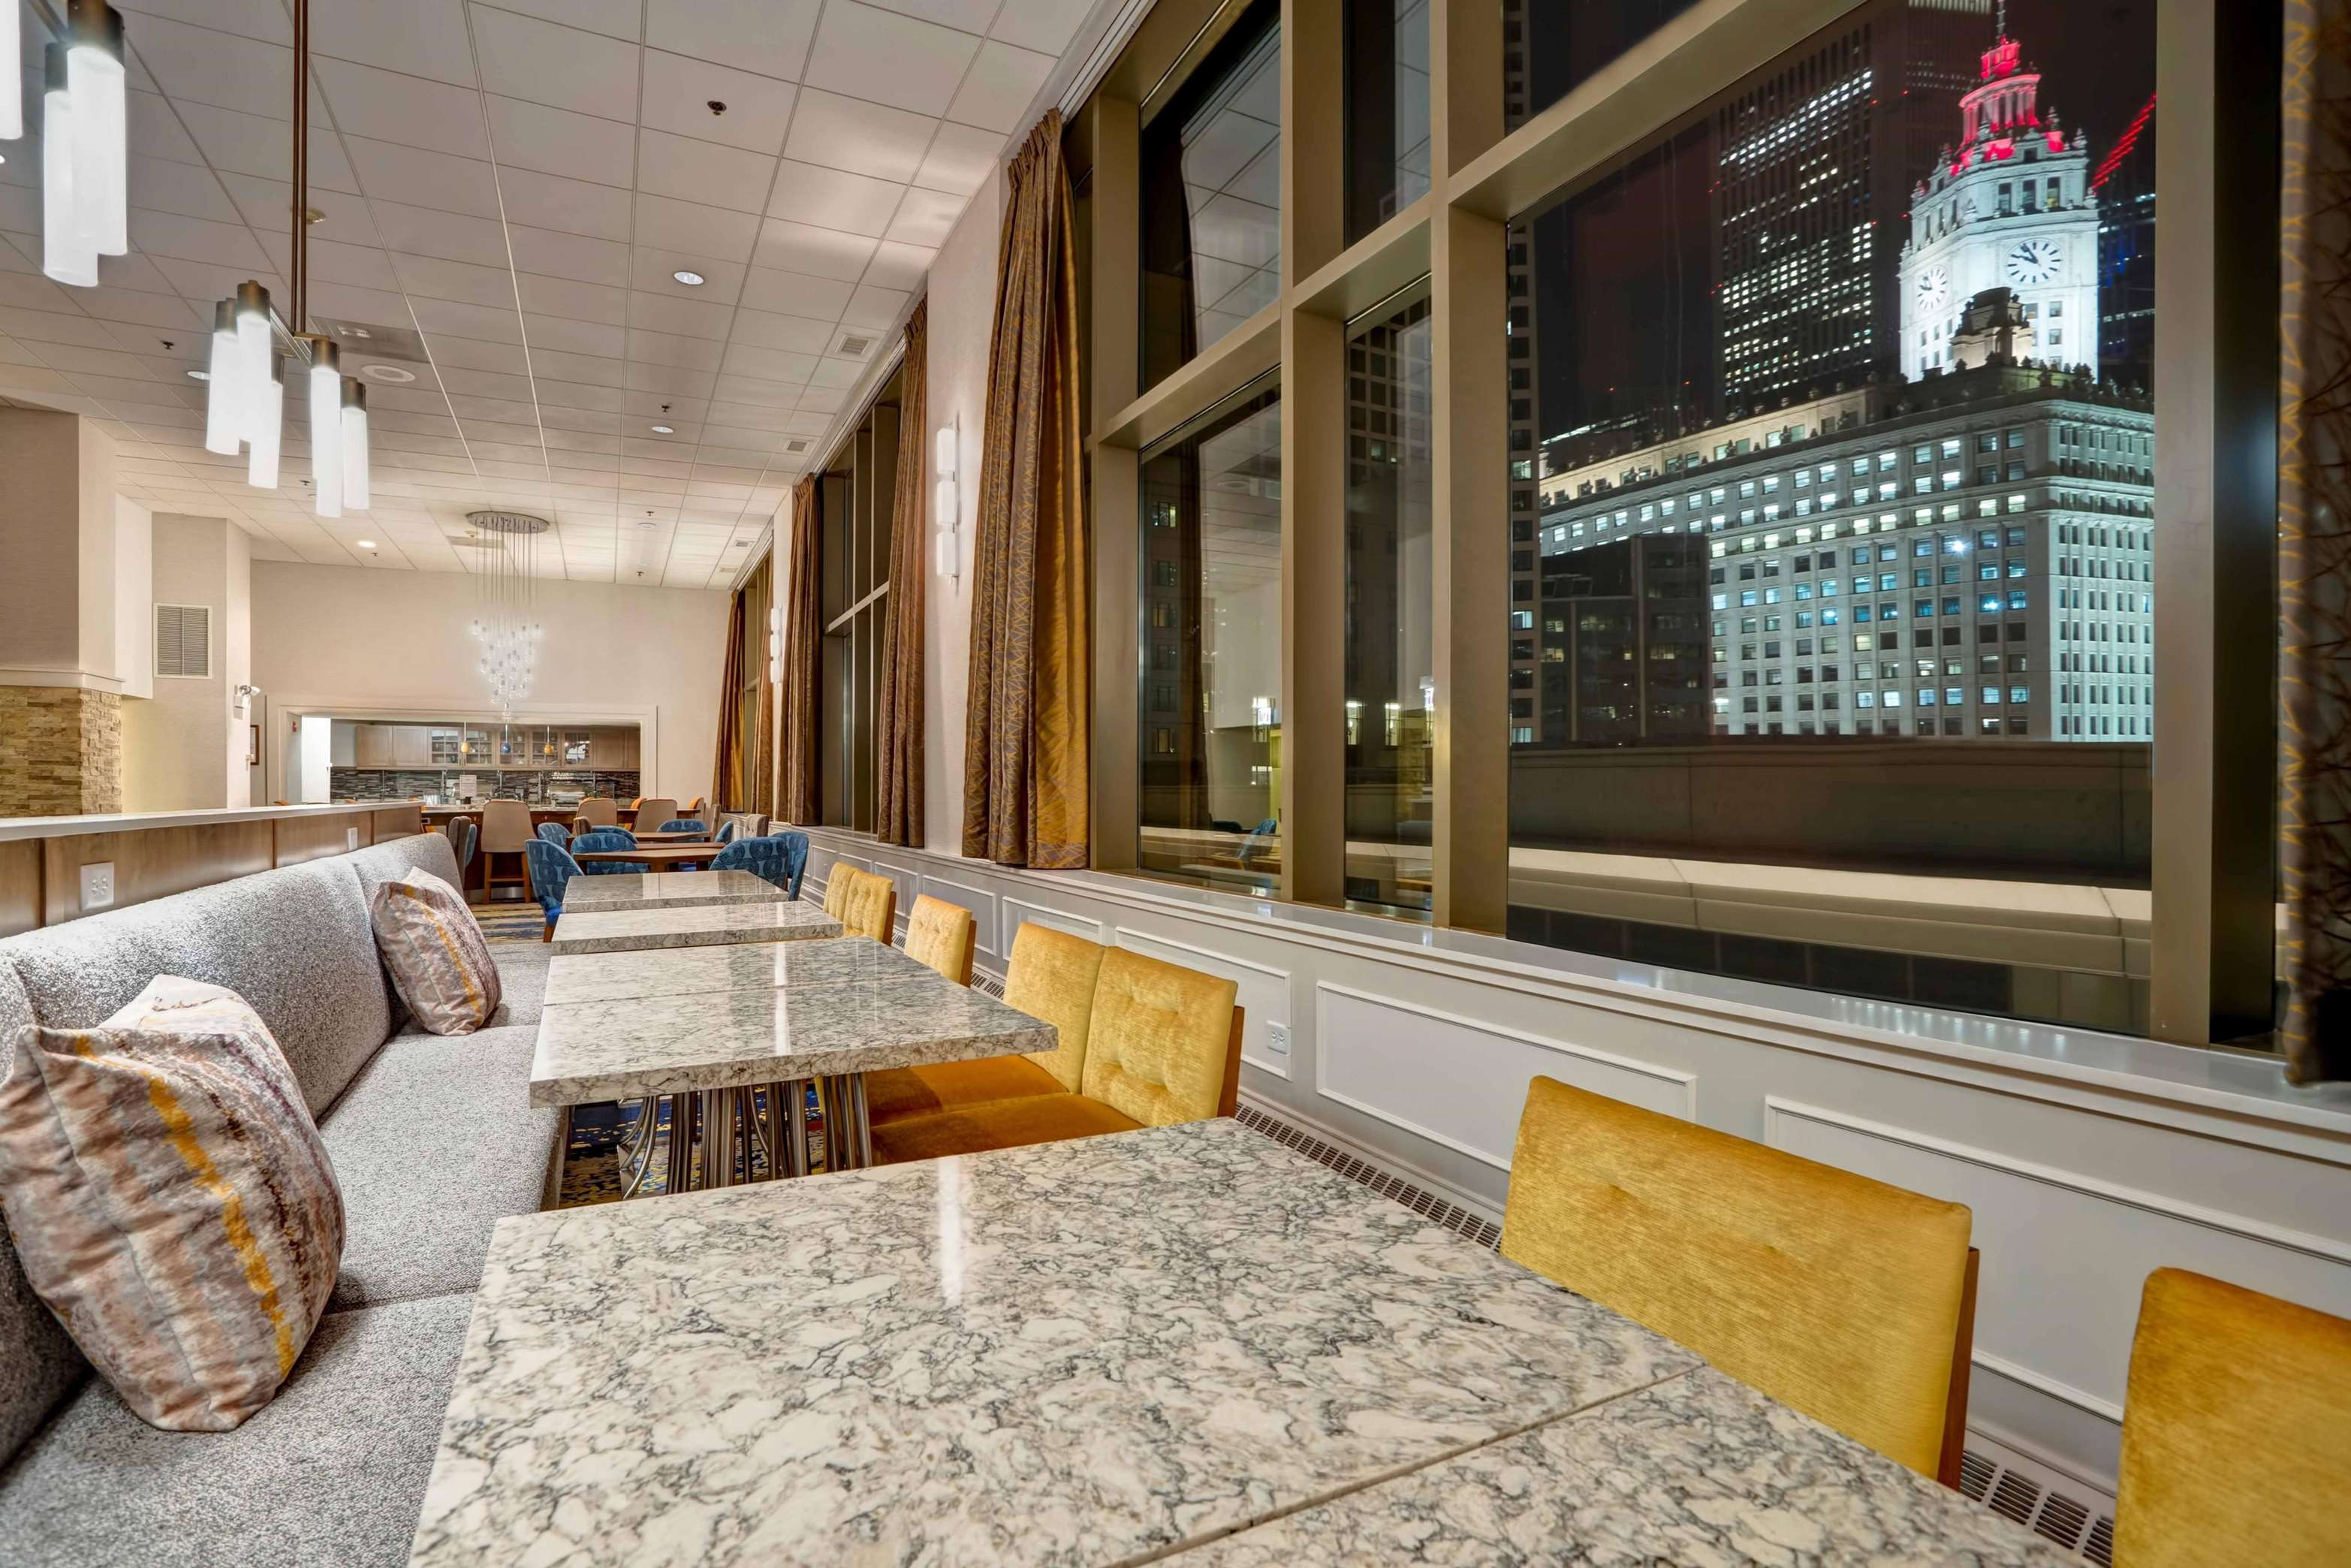 Homewood Suites by Hilton Chicago-Downtown image 40